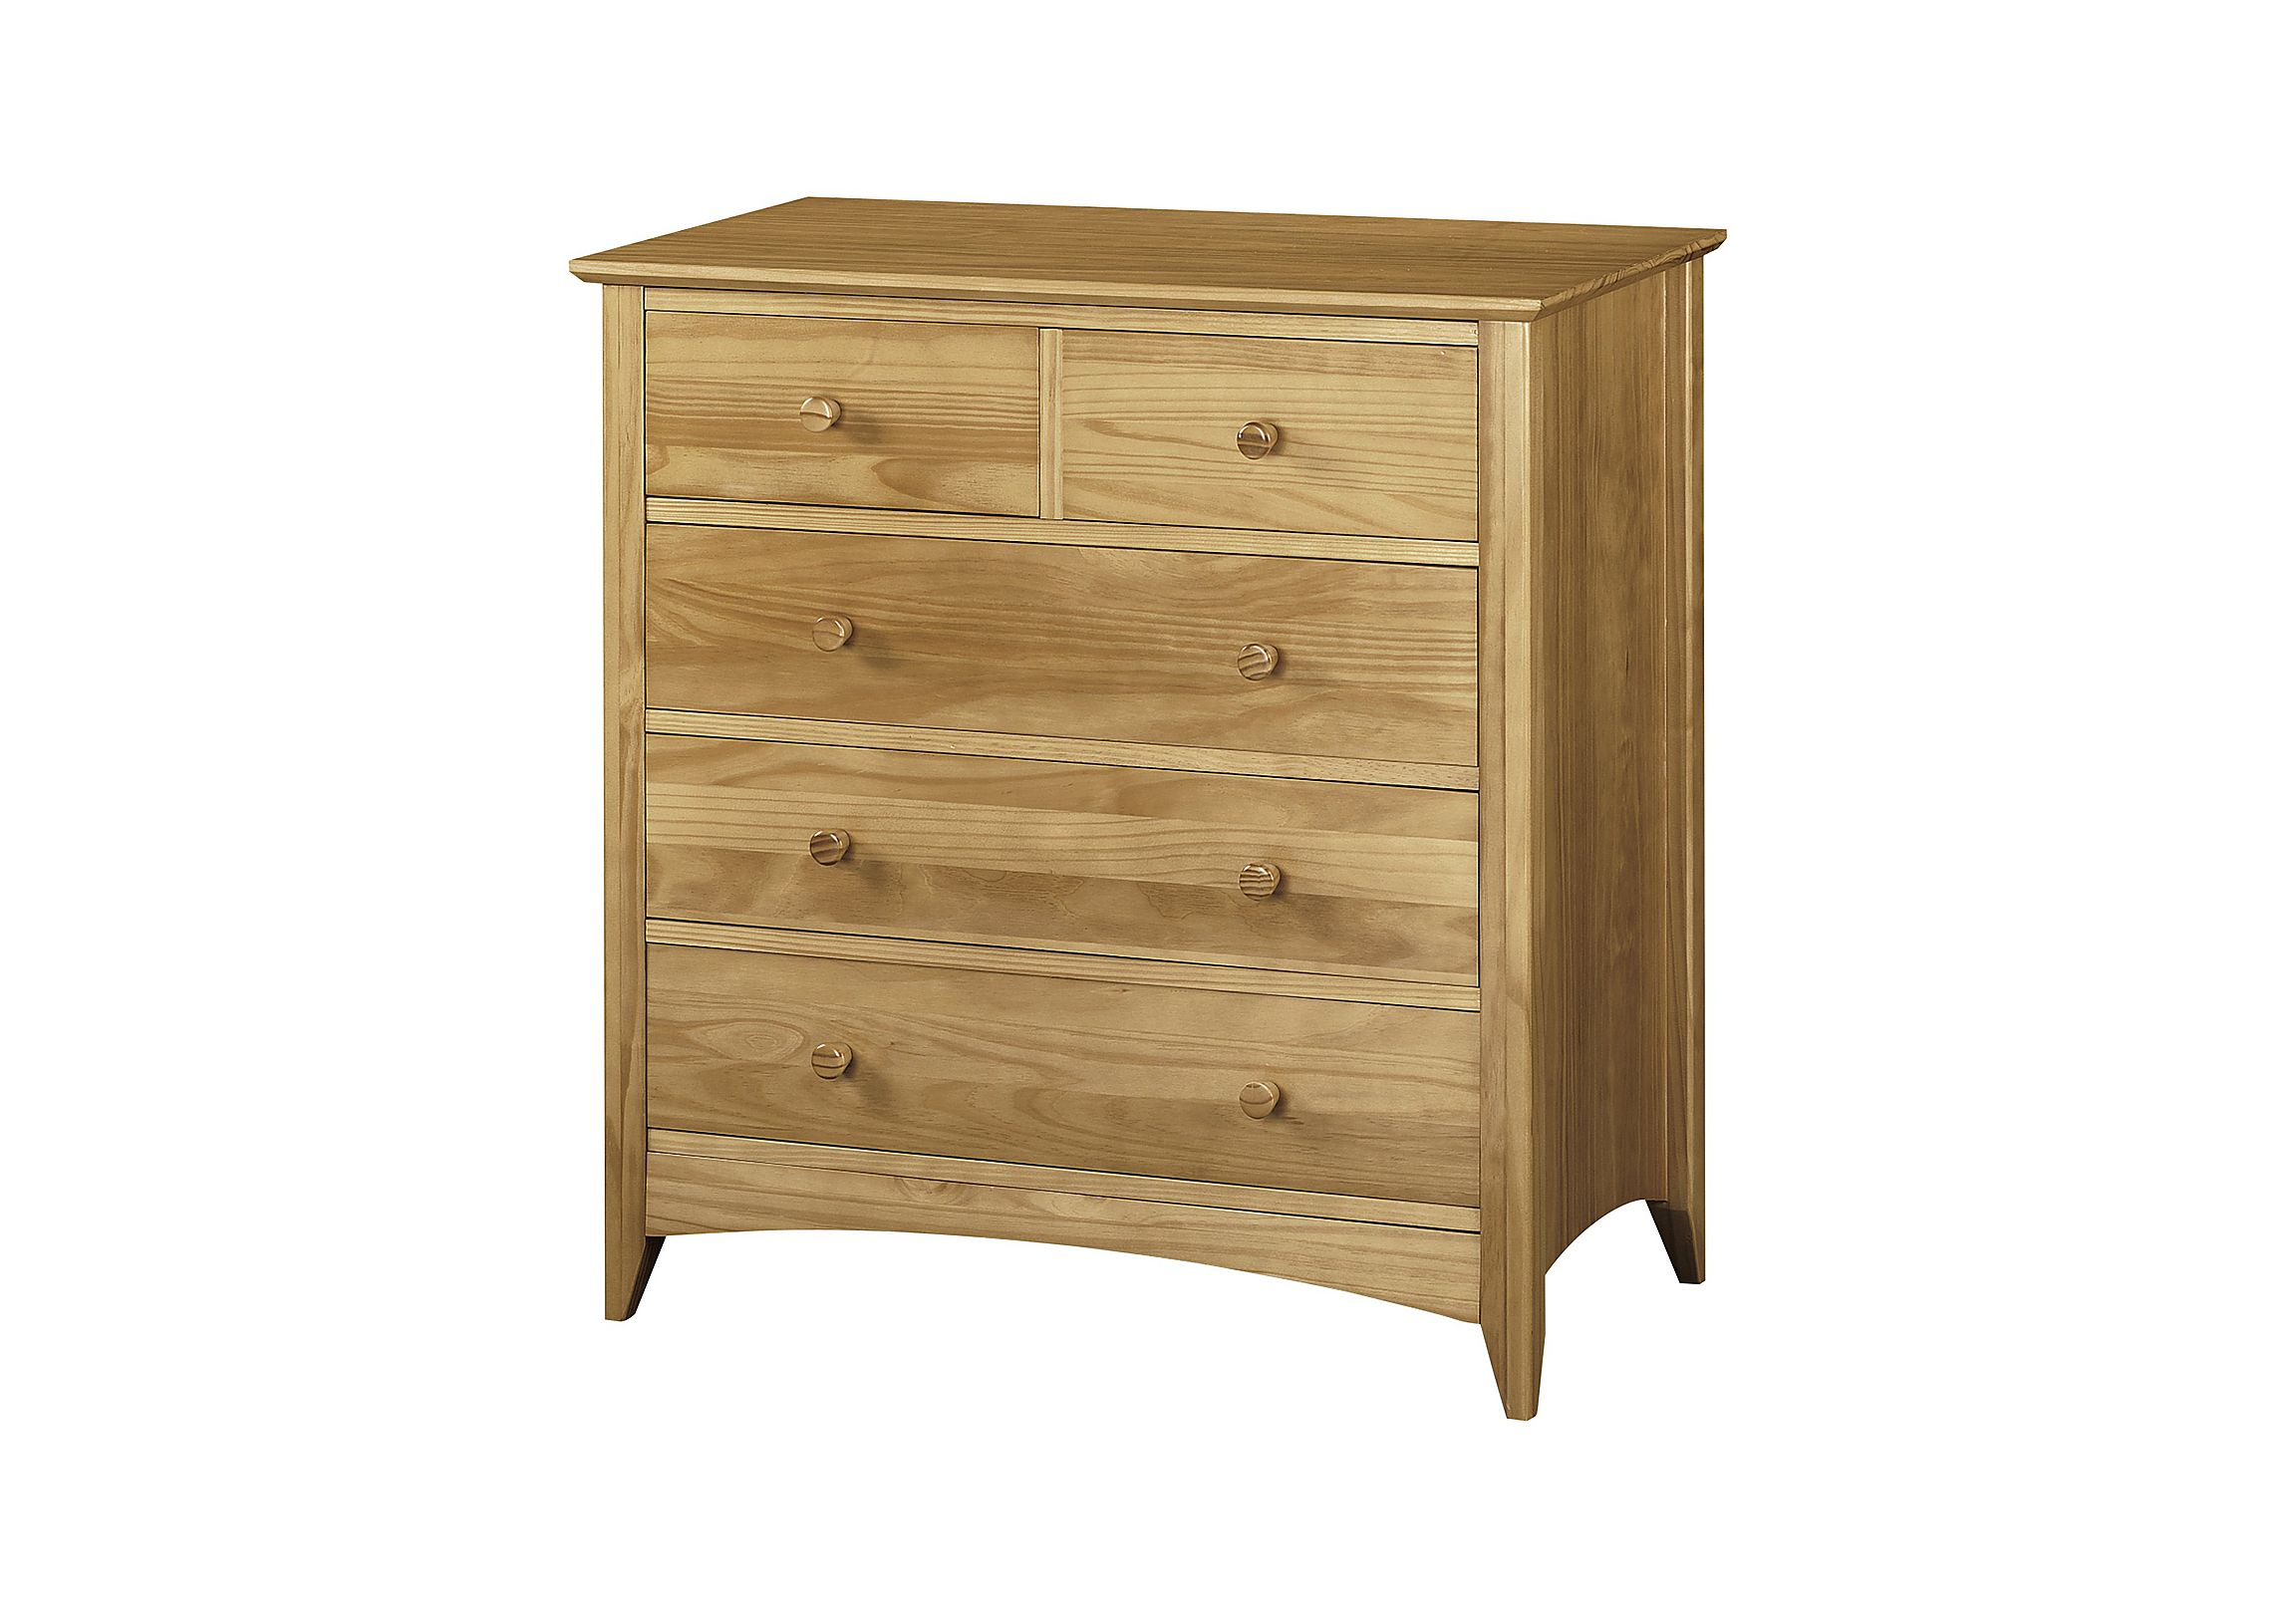 Ikea Unfinished Dresser Bedroom: Mesmerizing Drawer Chest For Bedroom Furniture